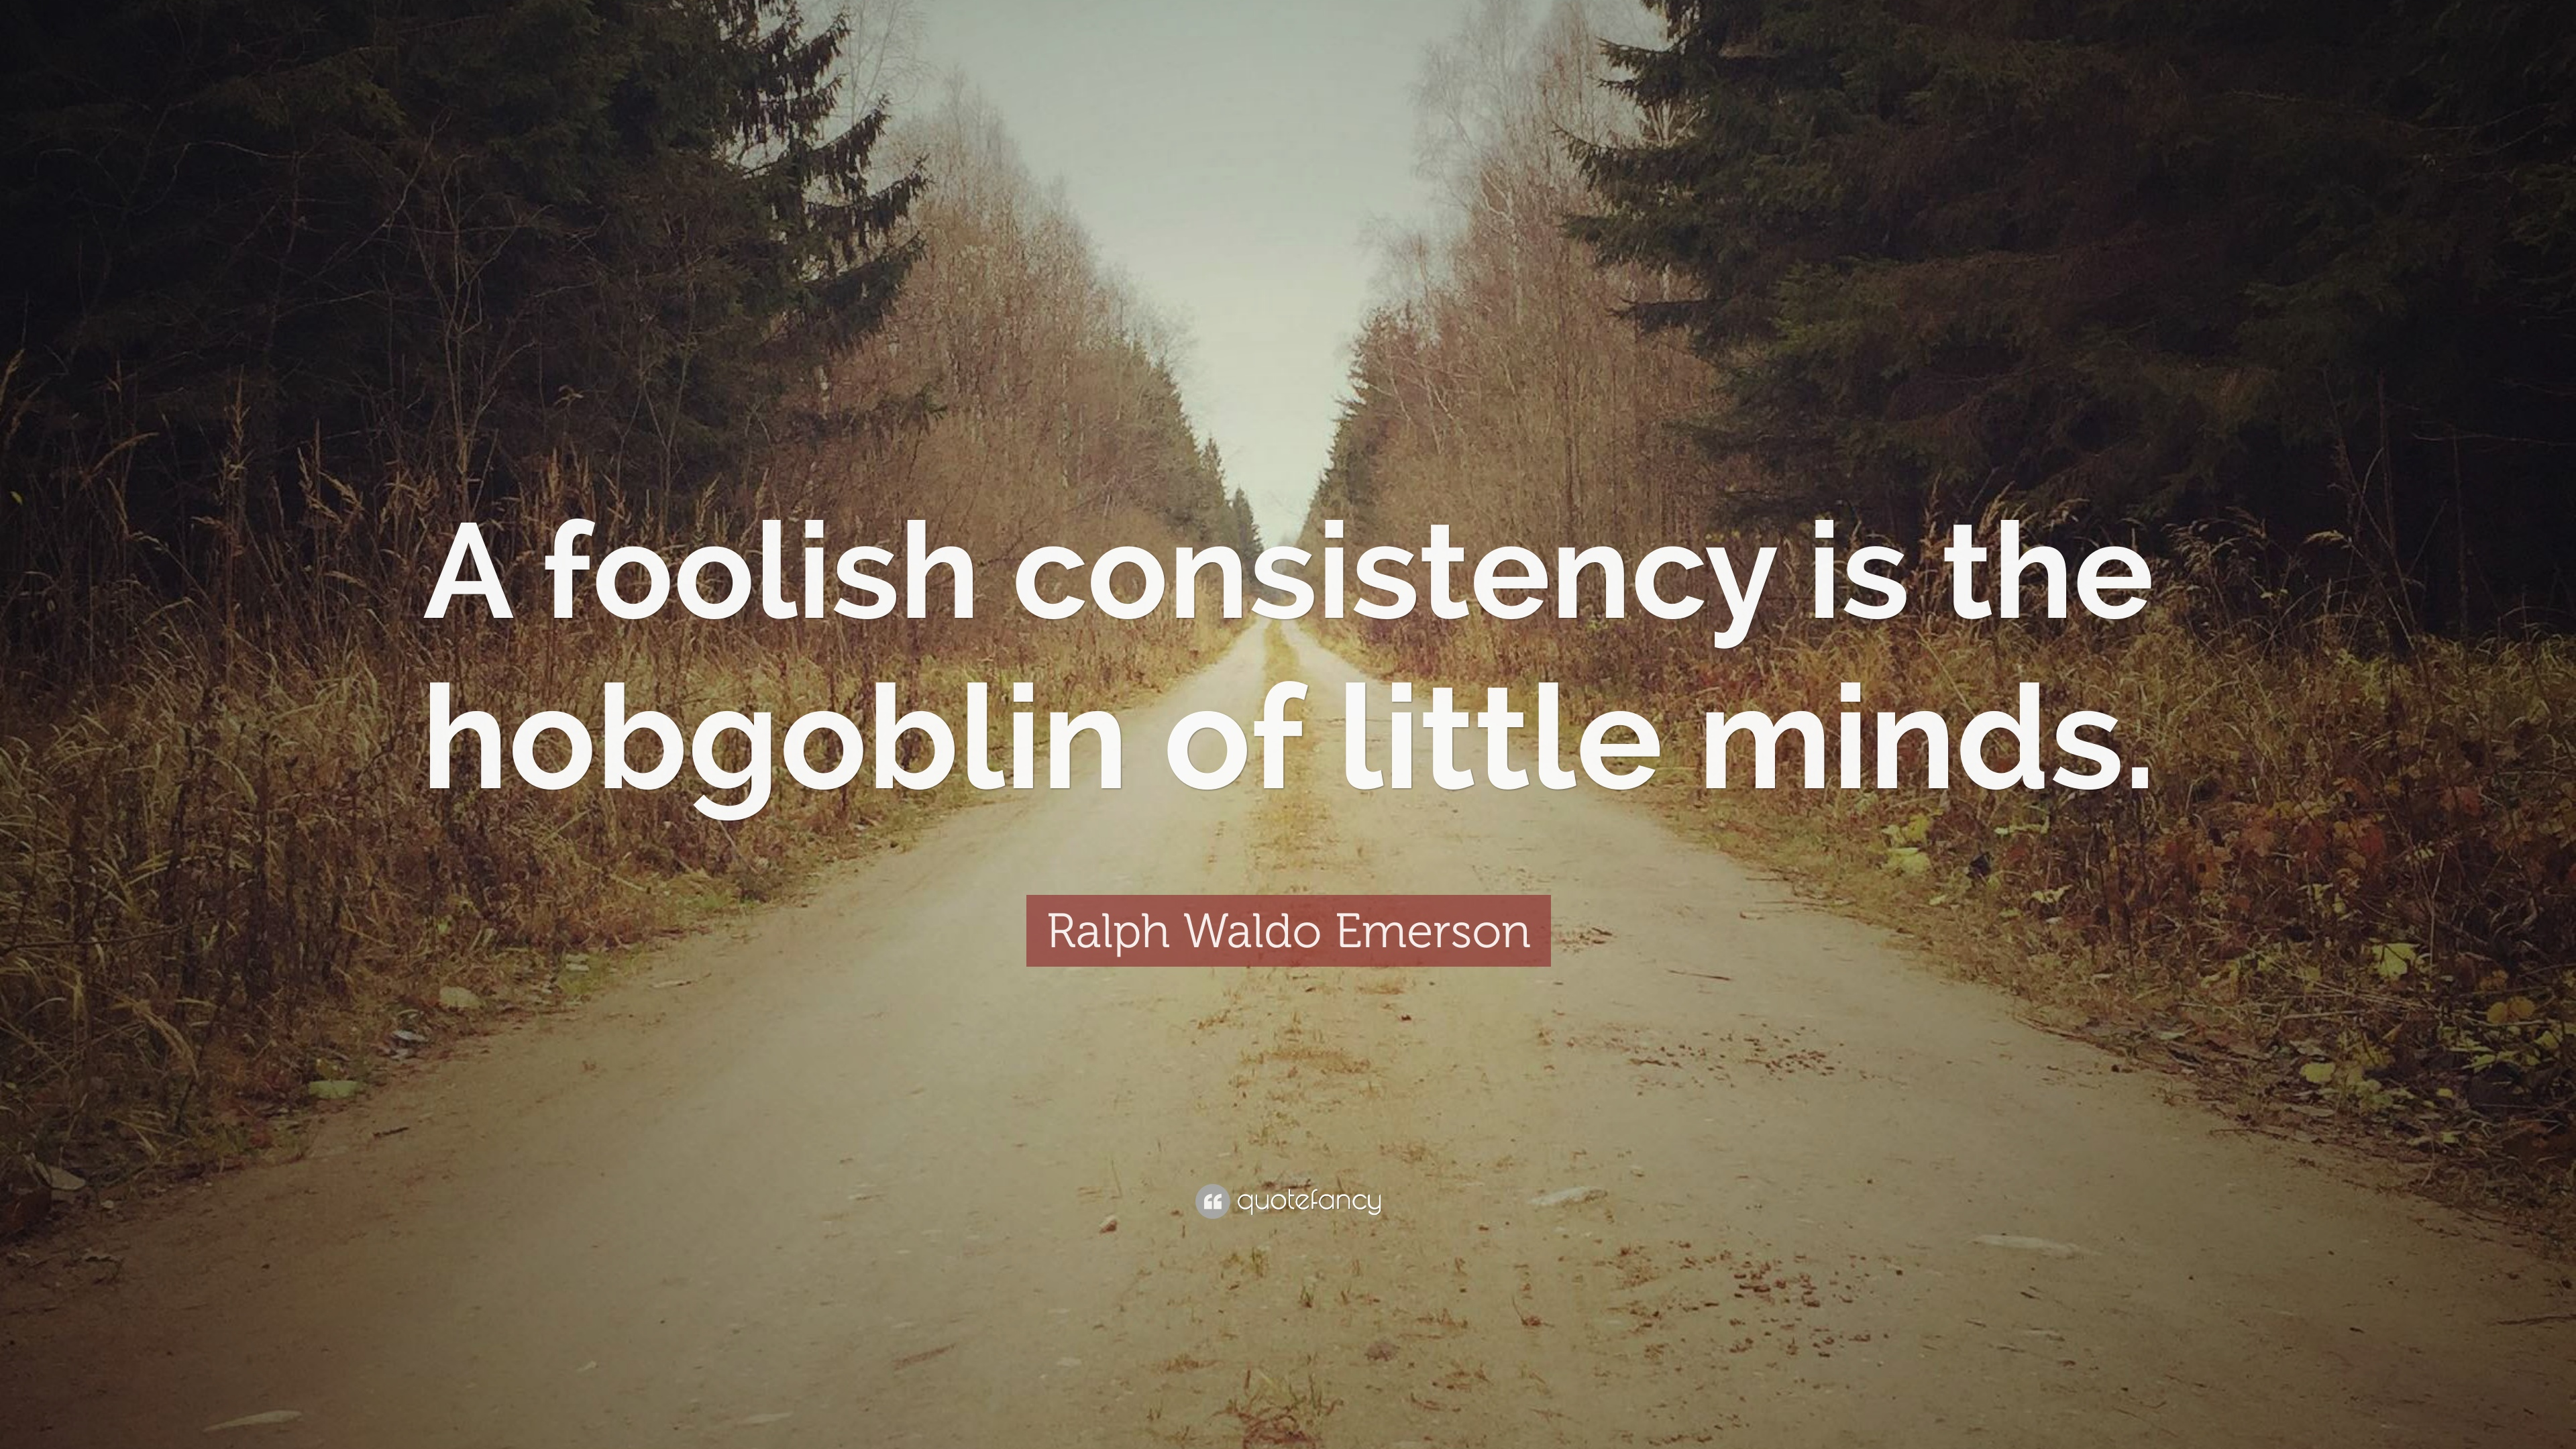 Consistency Quotes Wallpaper Ralph Waldo Emerson Quotes 100 Wallpapers Quotefancy